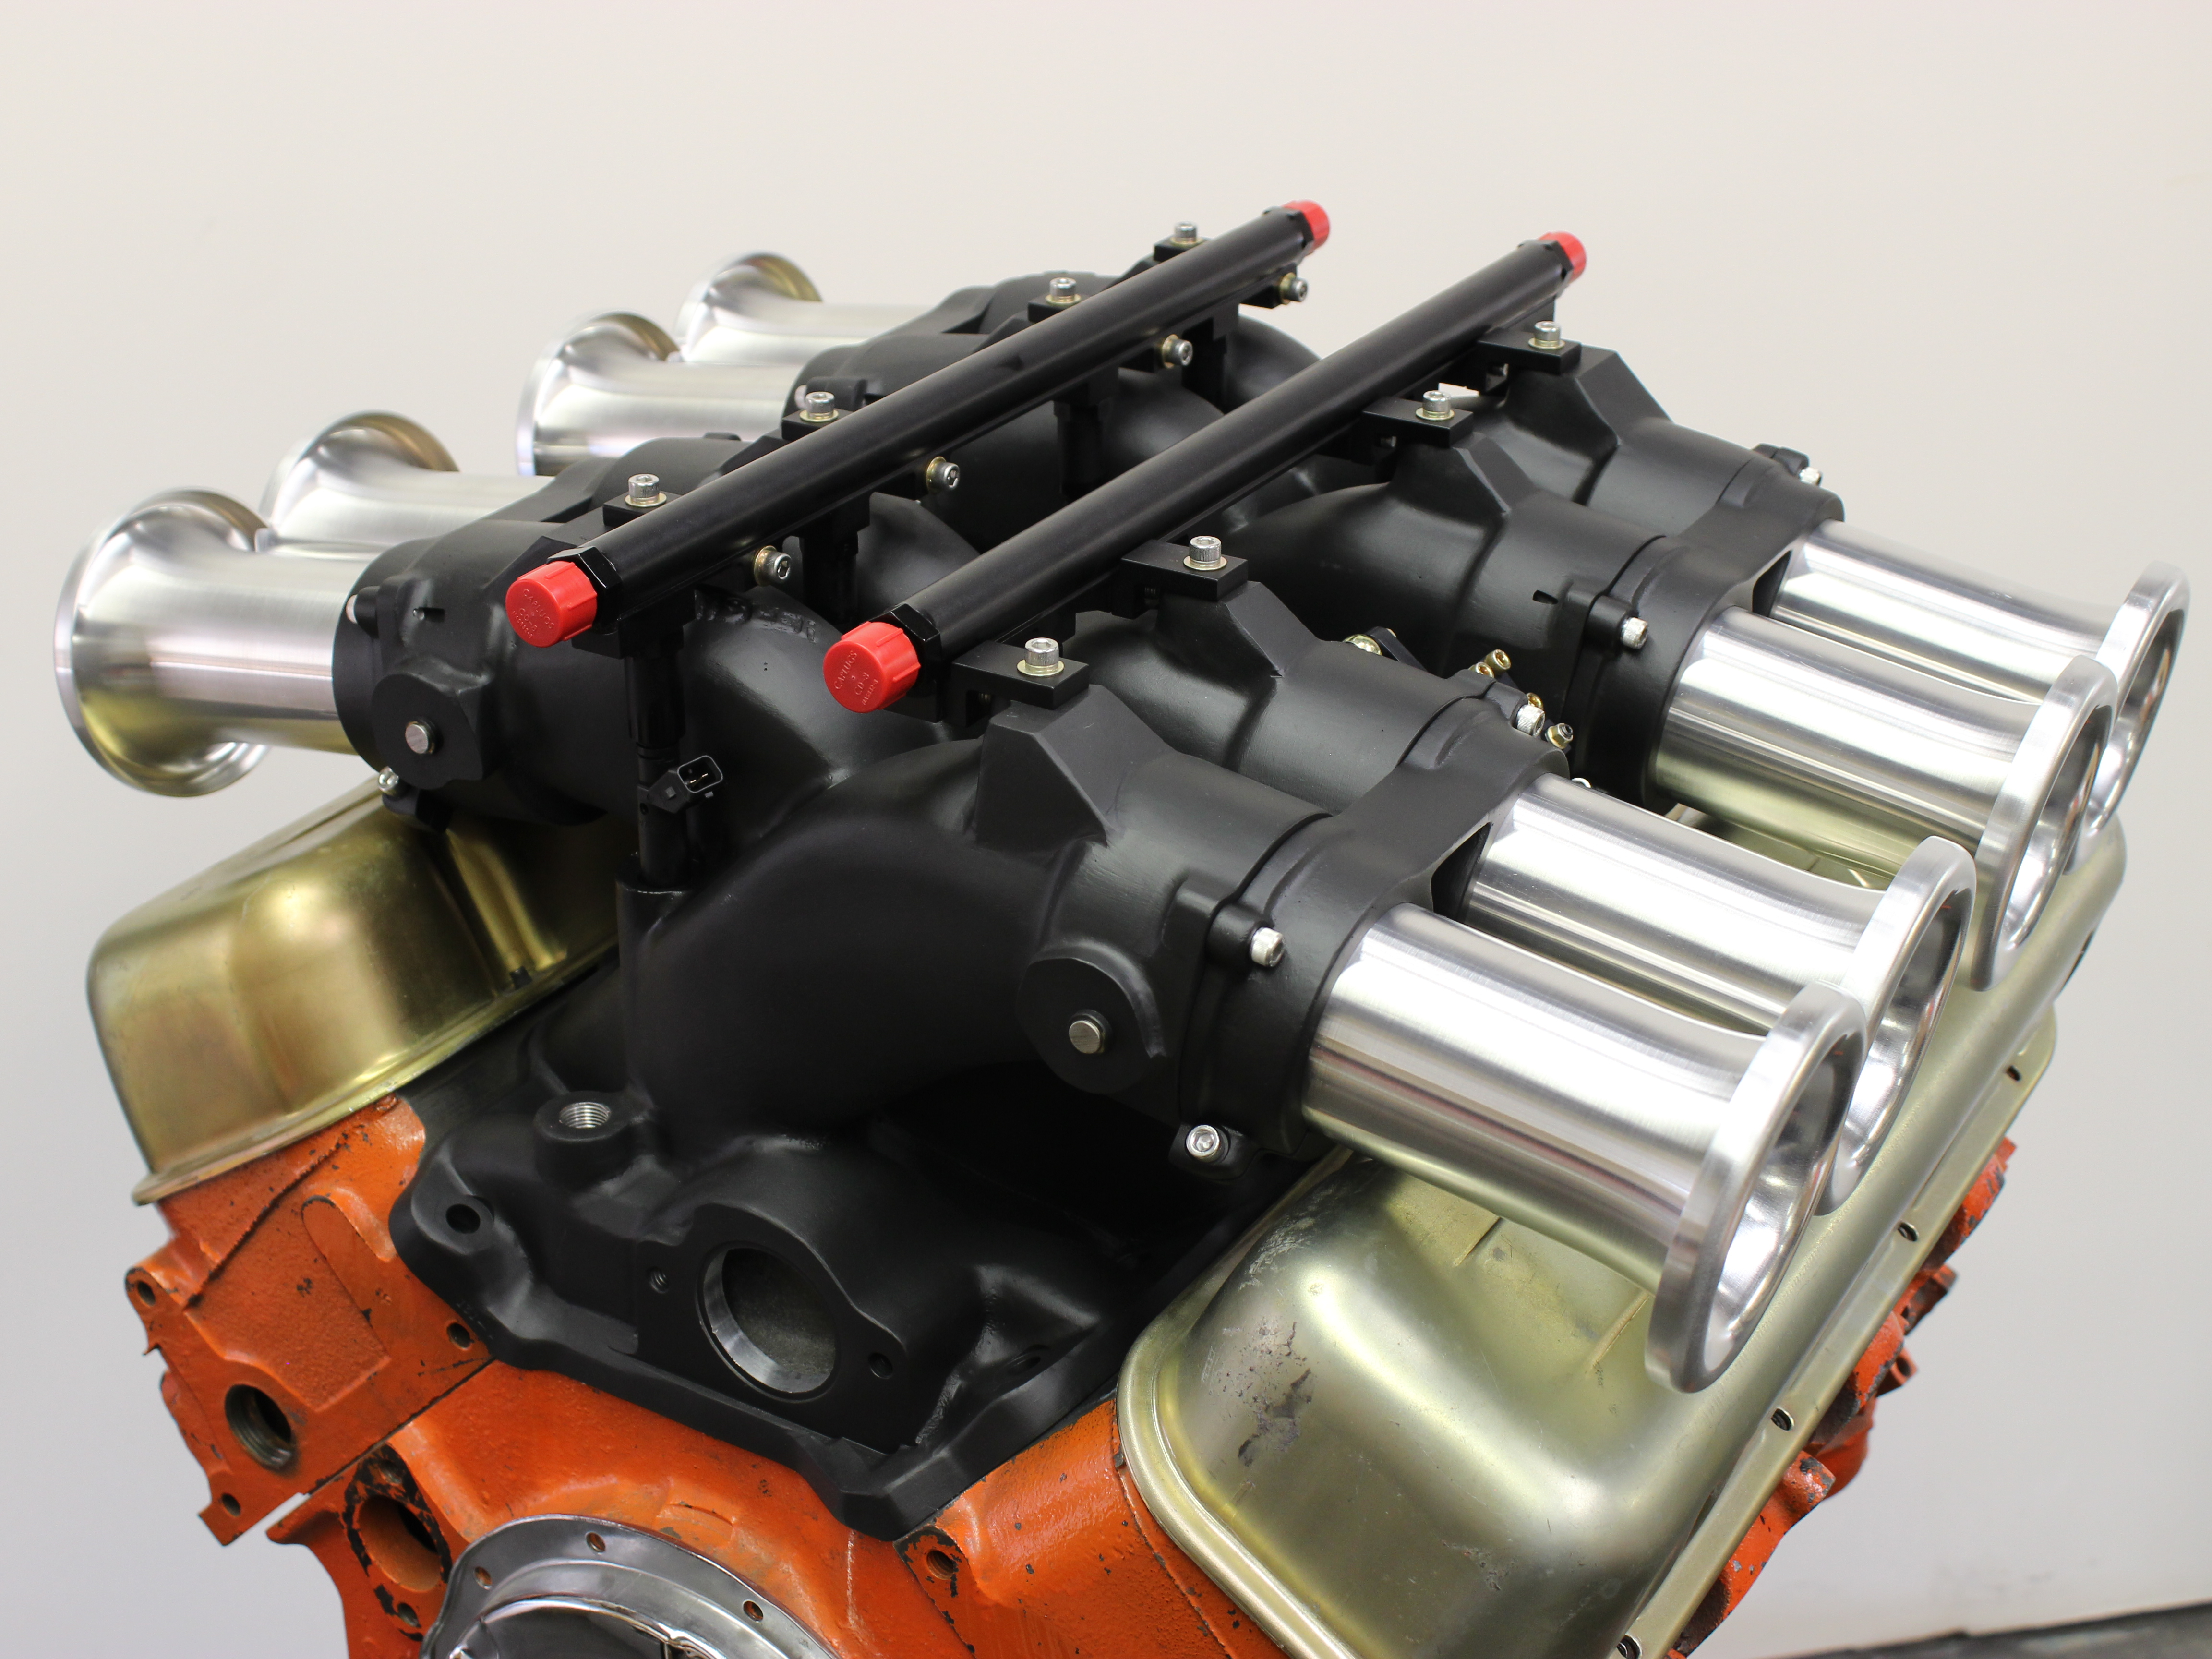 BBC Cross Ram General Motors Racing Manifolds from Kinsler ...